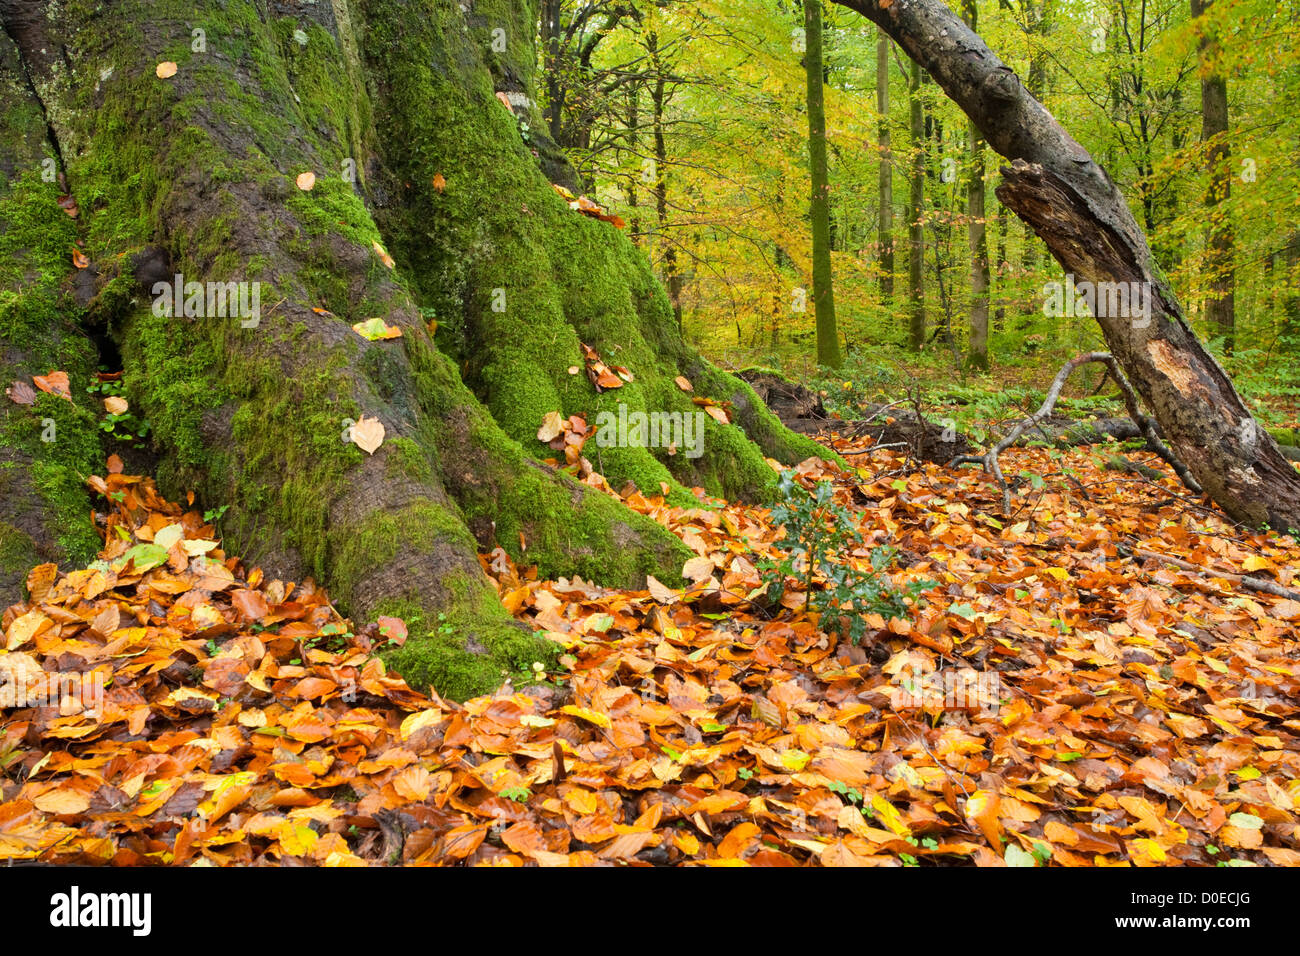 Decaying Wood And Fallen Autumn Leaves On The Forest Floor At